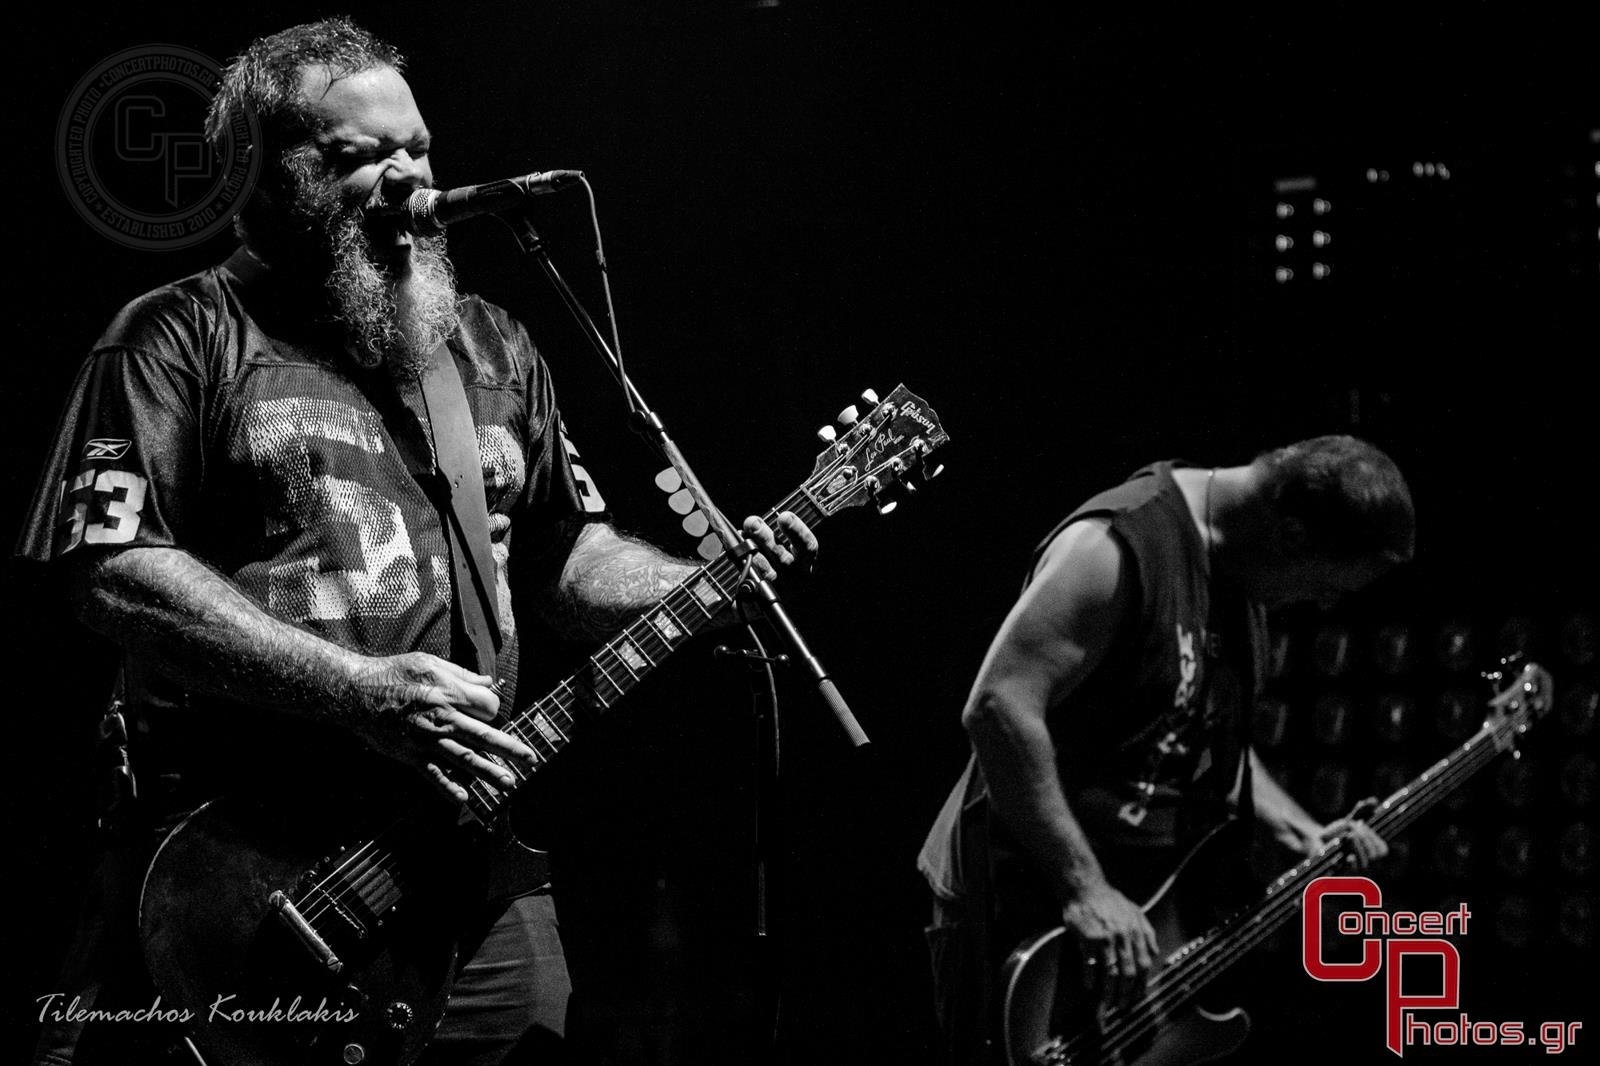 Neurosis-Neurosis photographer:  - concertphotos_20140707_23_56_50-7